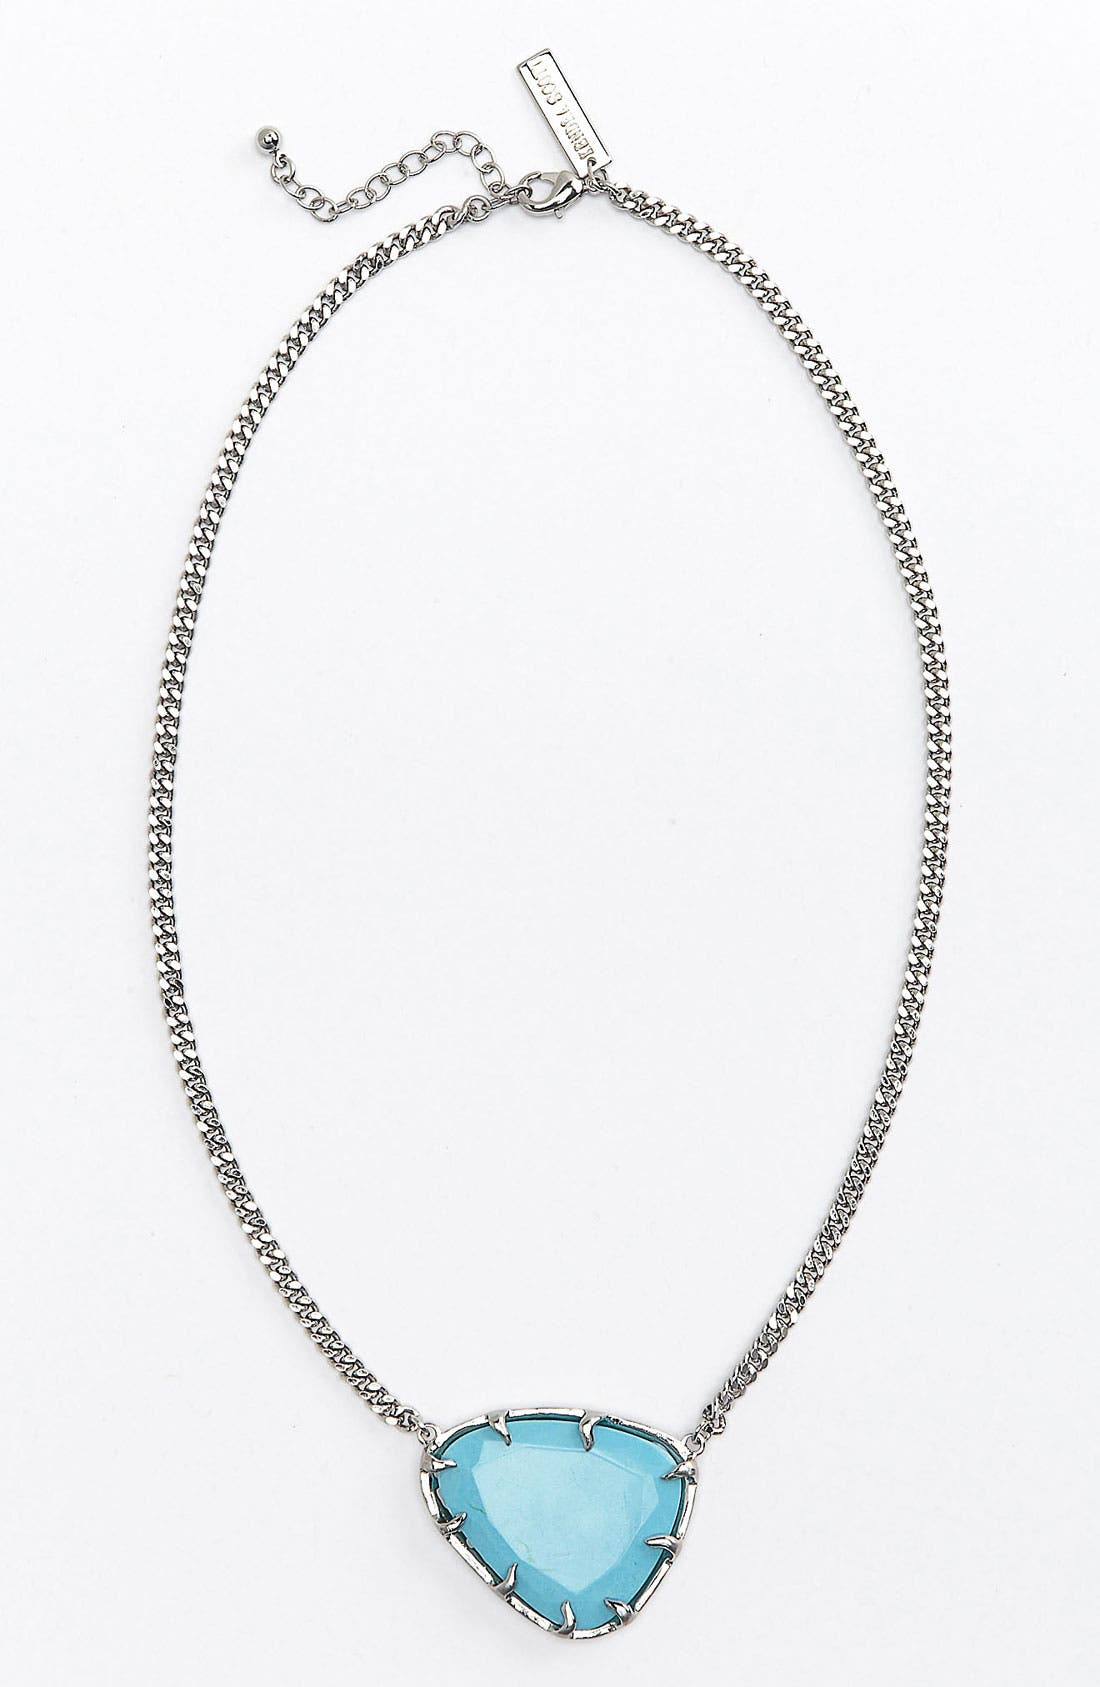 Alternate Image 1 Selected - Kendra Scott 'Merritt' Reversible Pendant Necklace